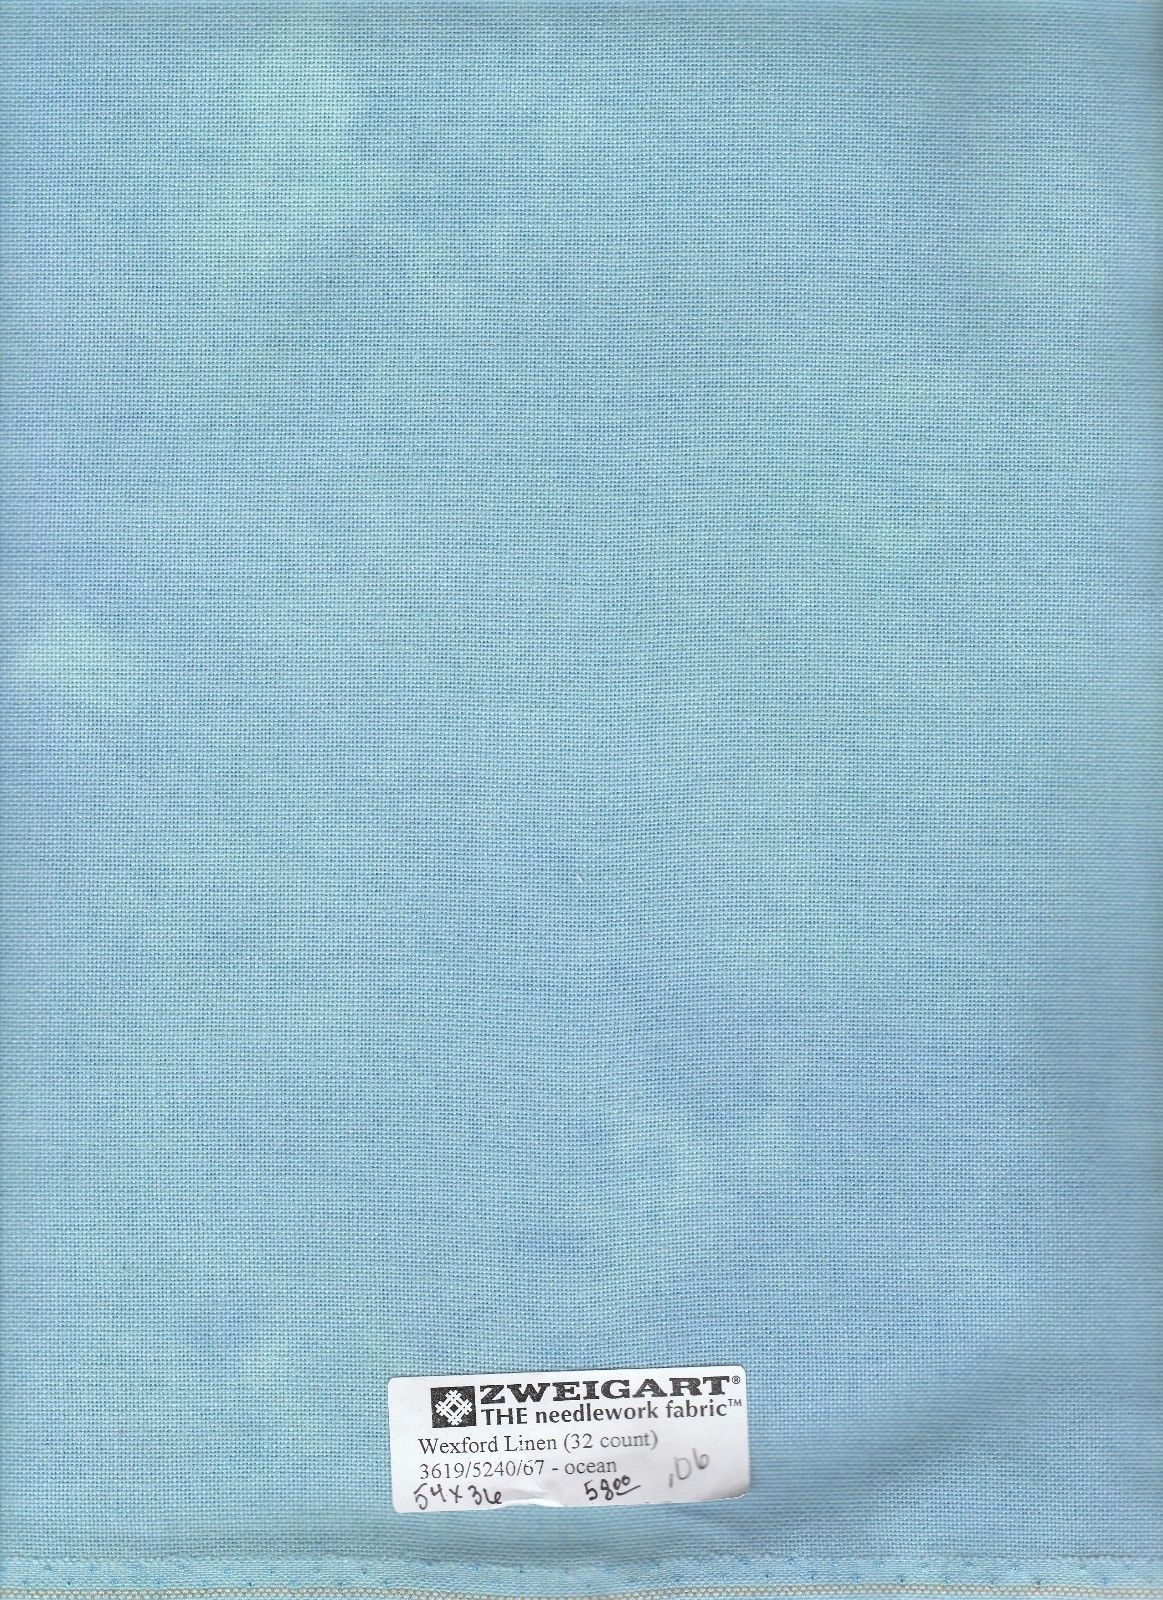 Embroidery Cloth Fabric 183196 Zweigart Wexford Linen 32 Ct Ocean